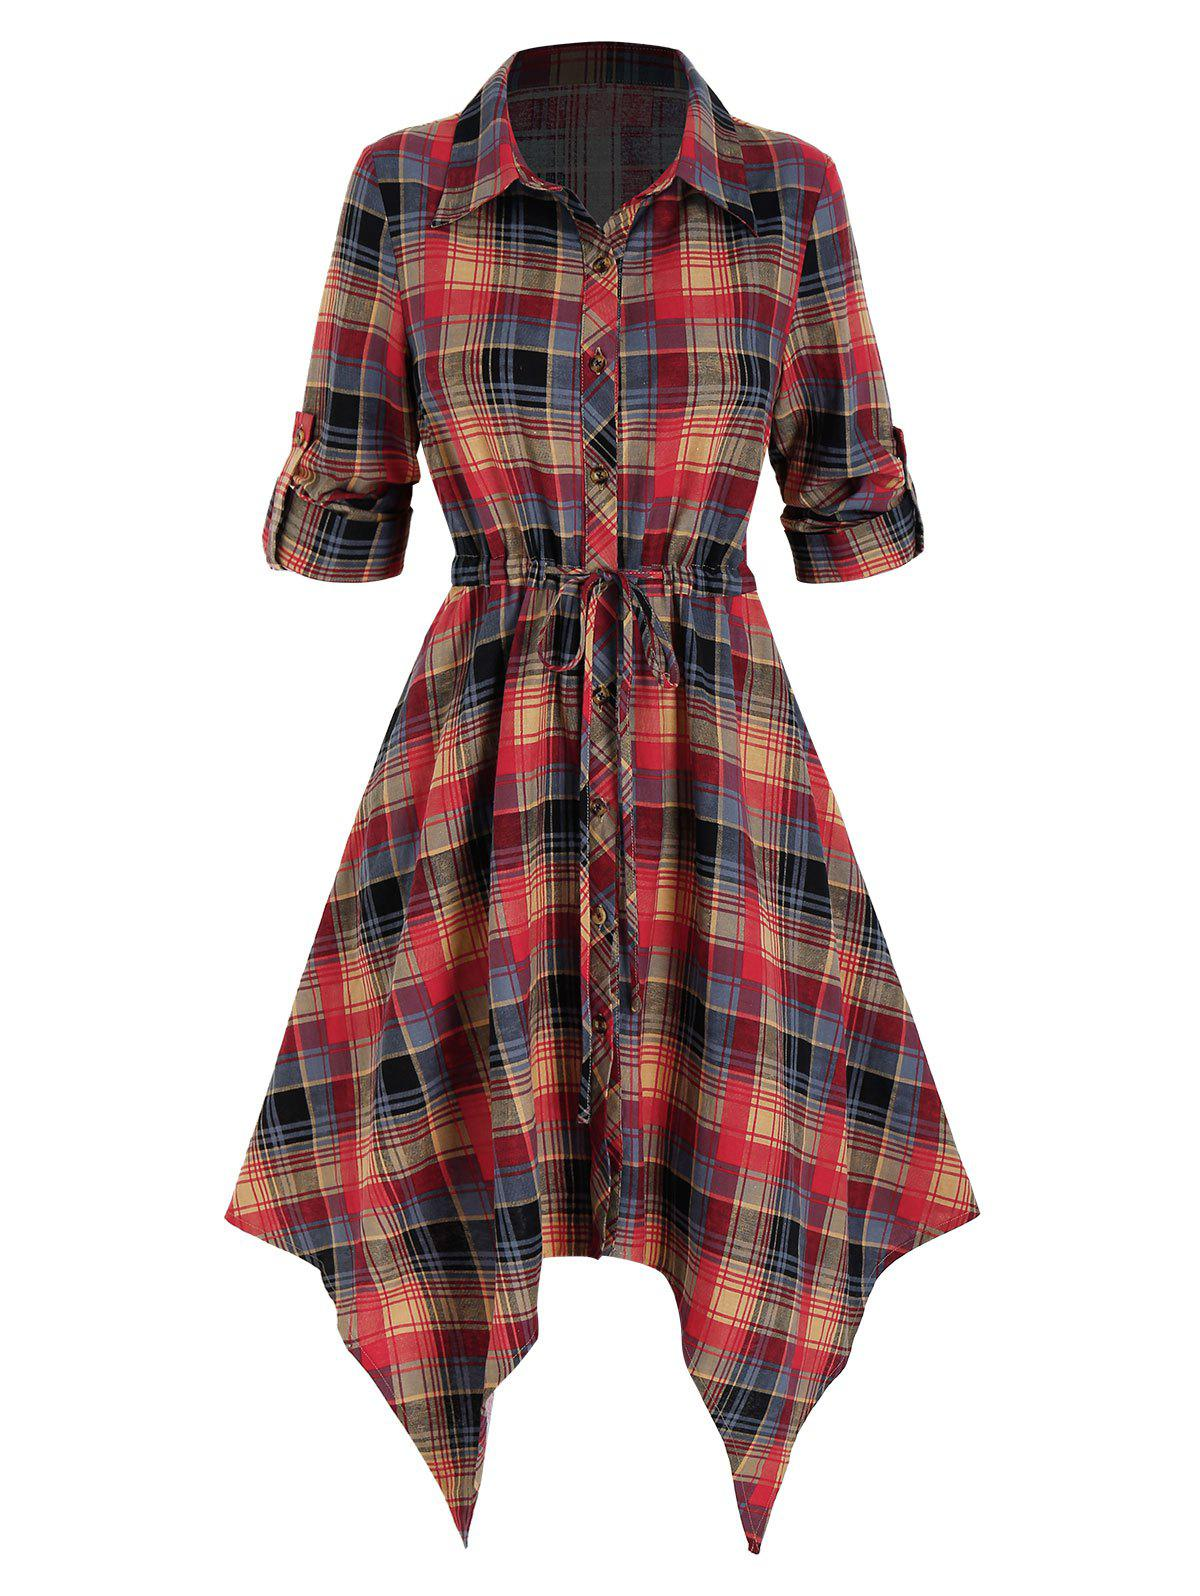 Fashion Plaid Printed Handkerchief Shirt Dress